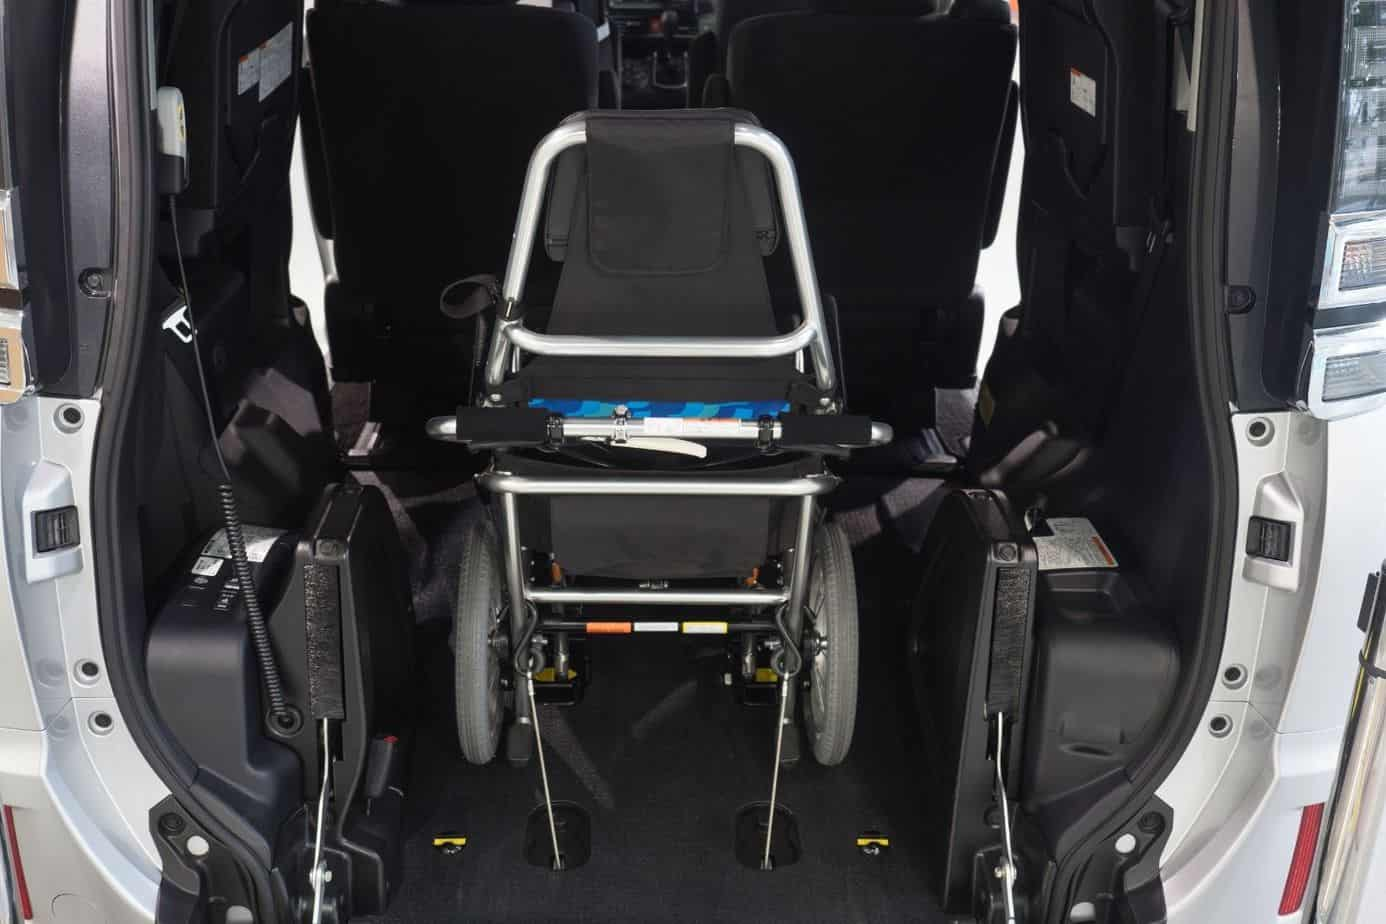 wheelchair stored at the back of the car